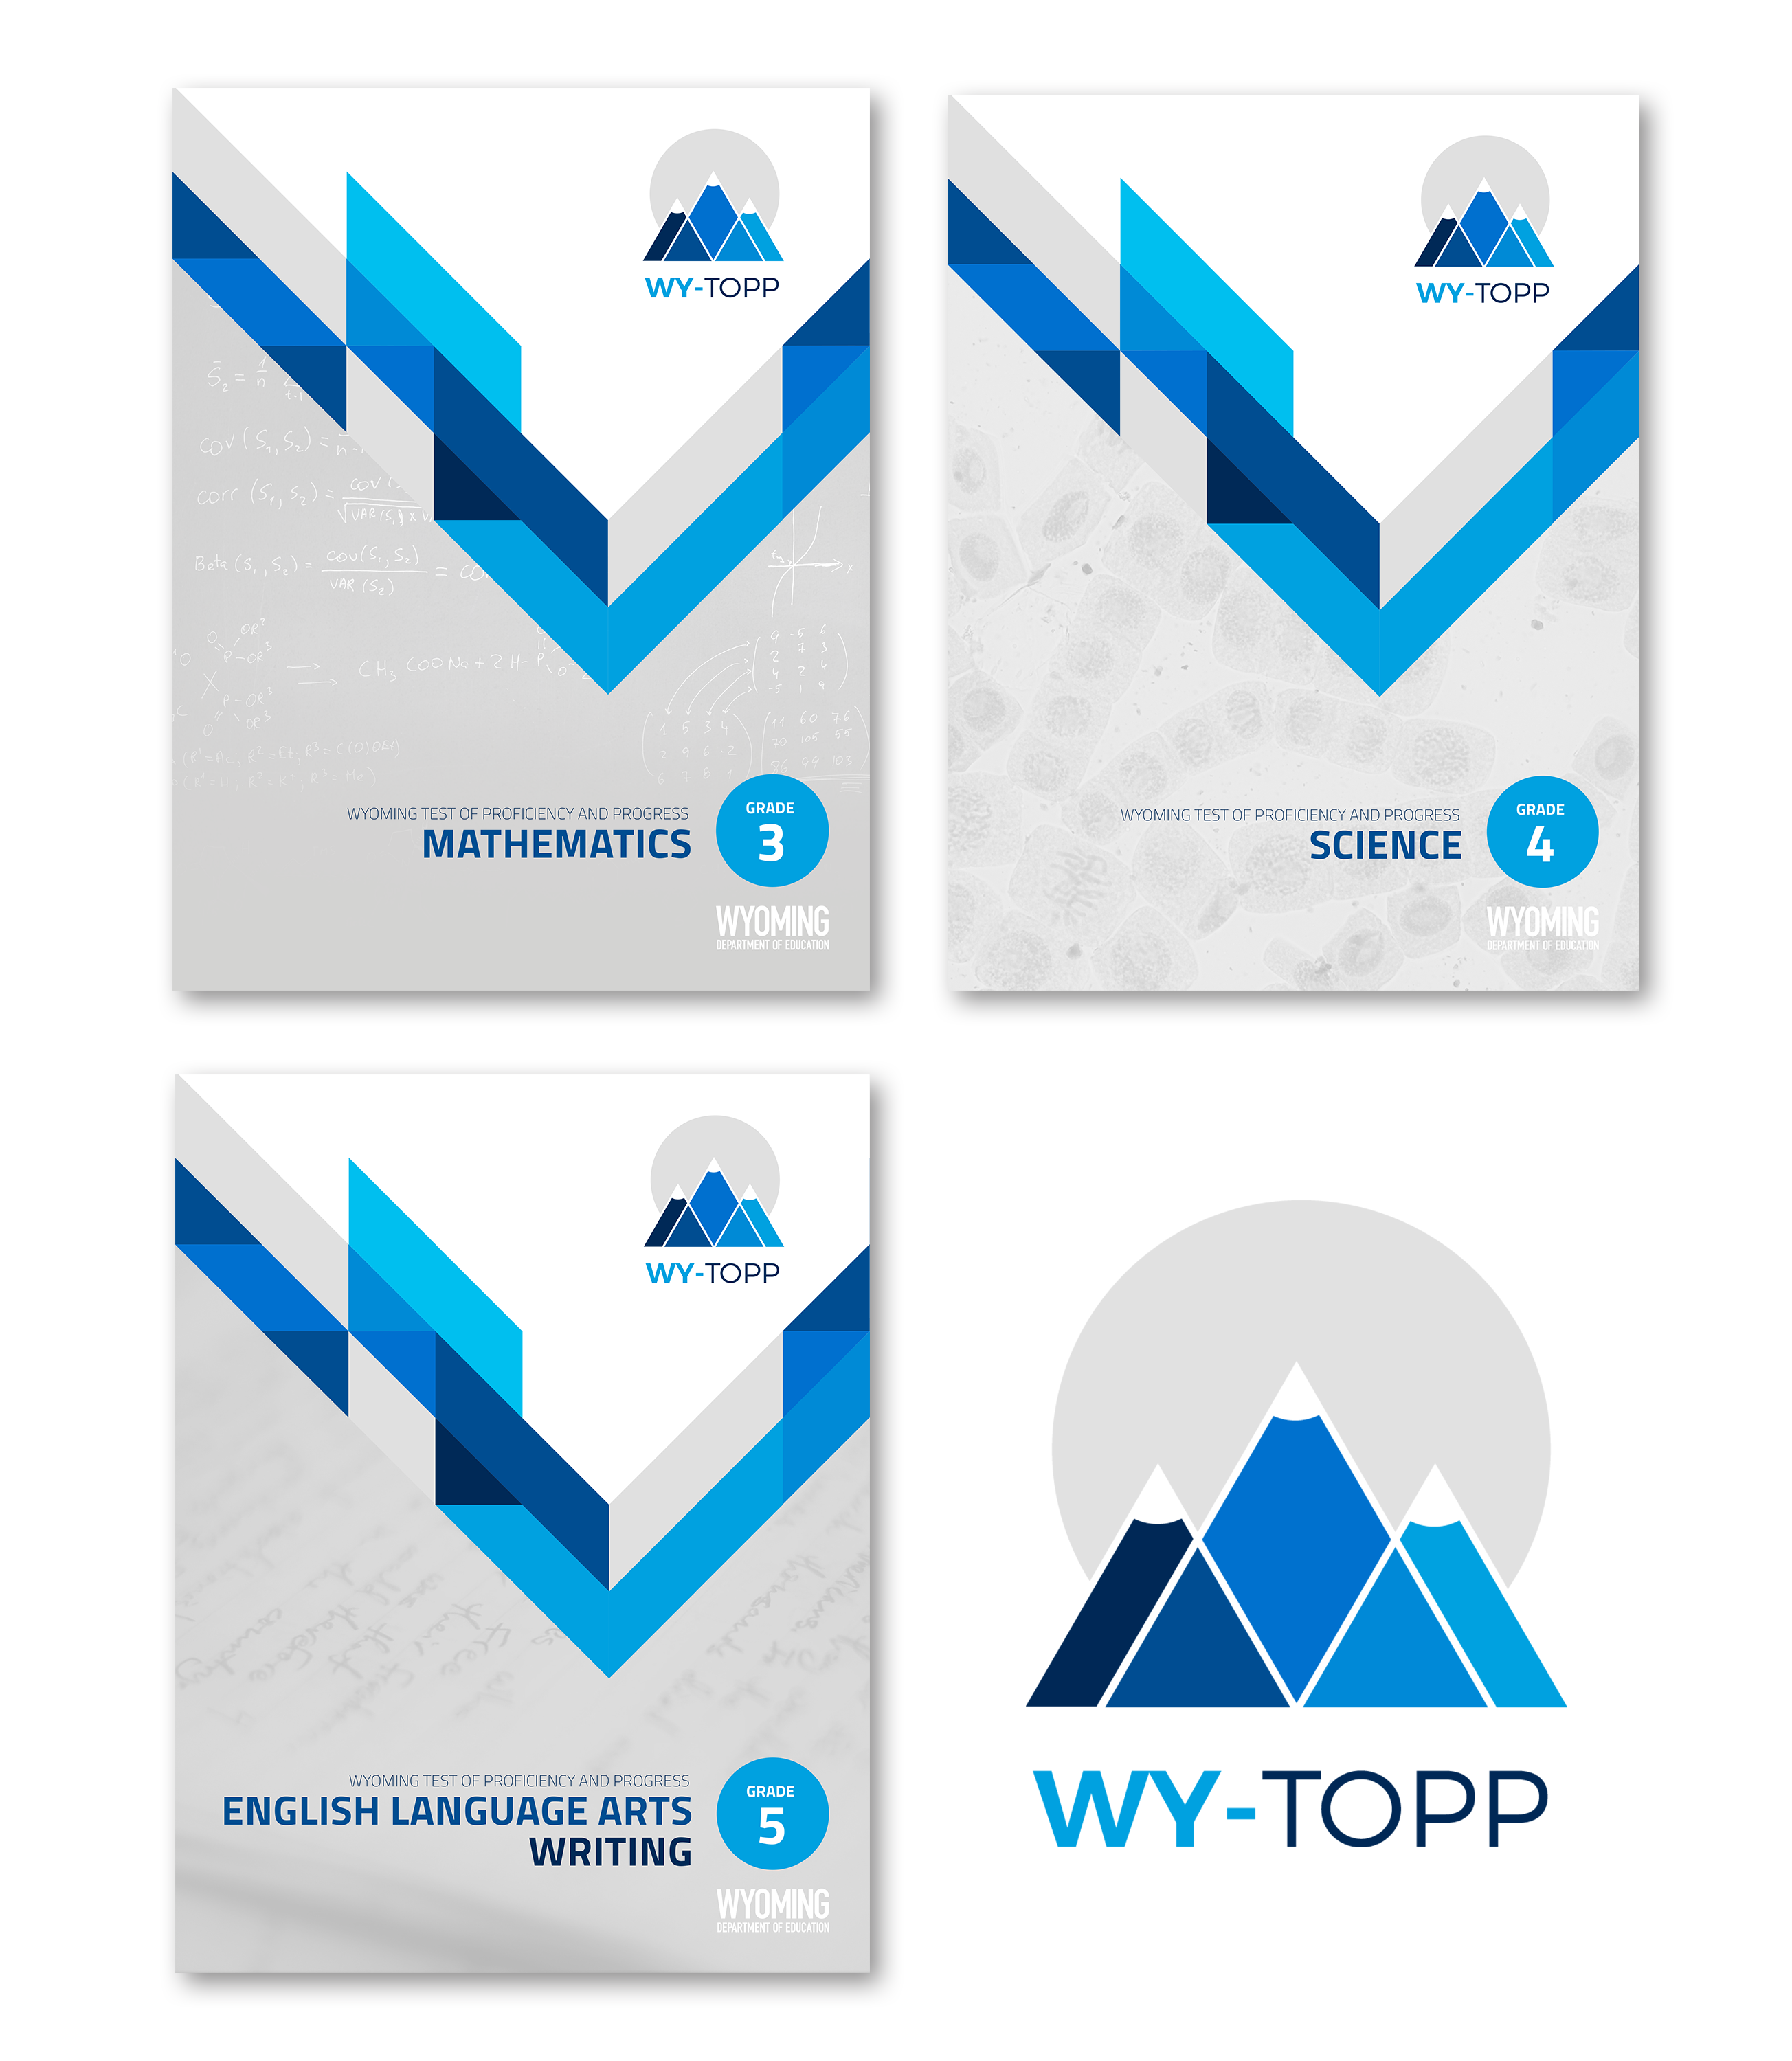 WY-TOPP Logo and Cover Designs